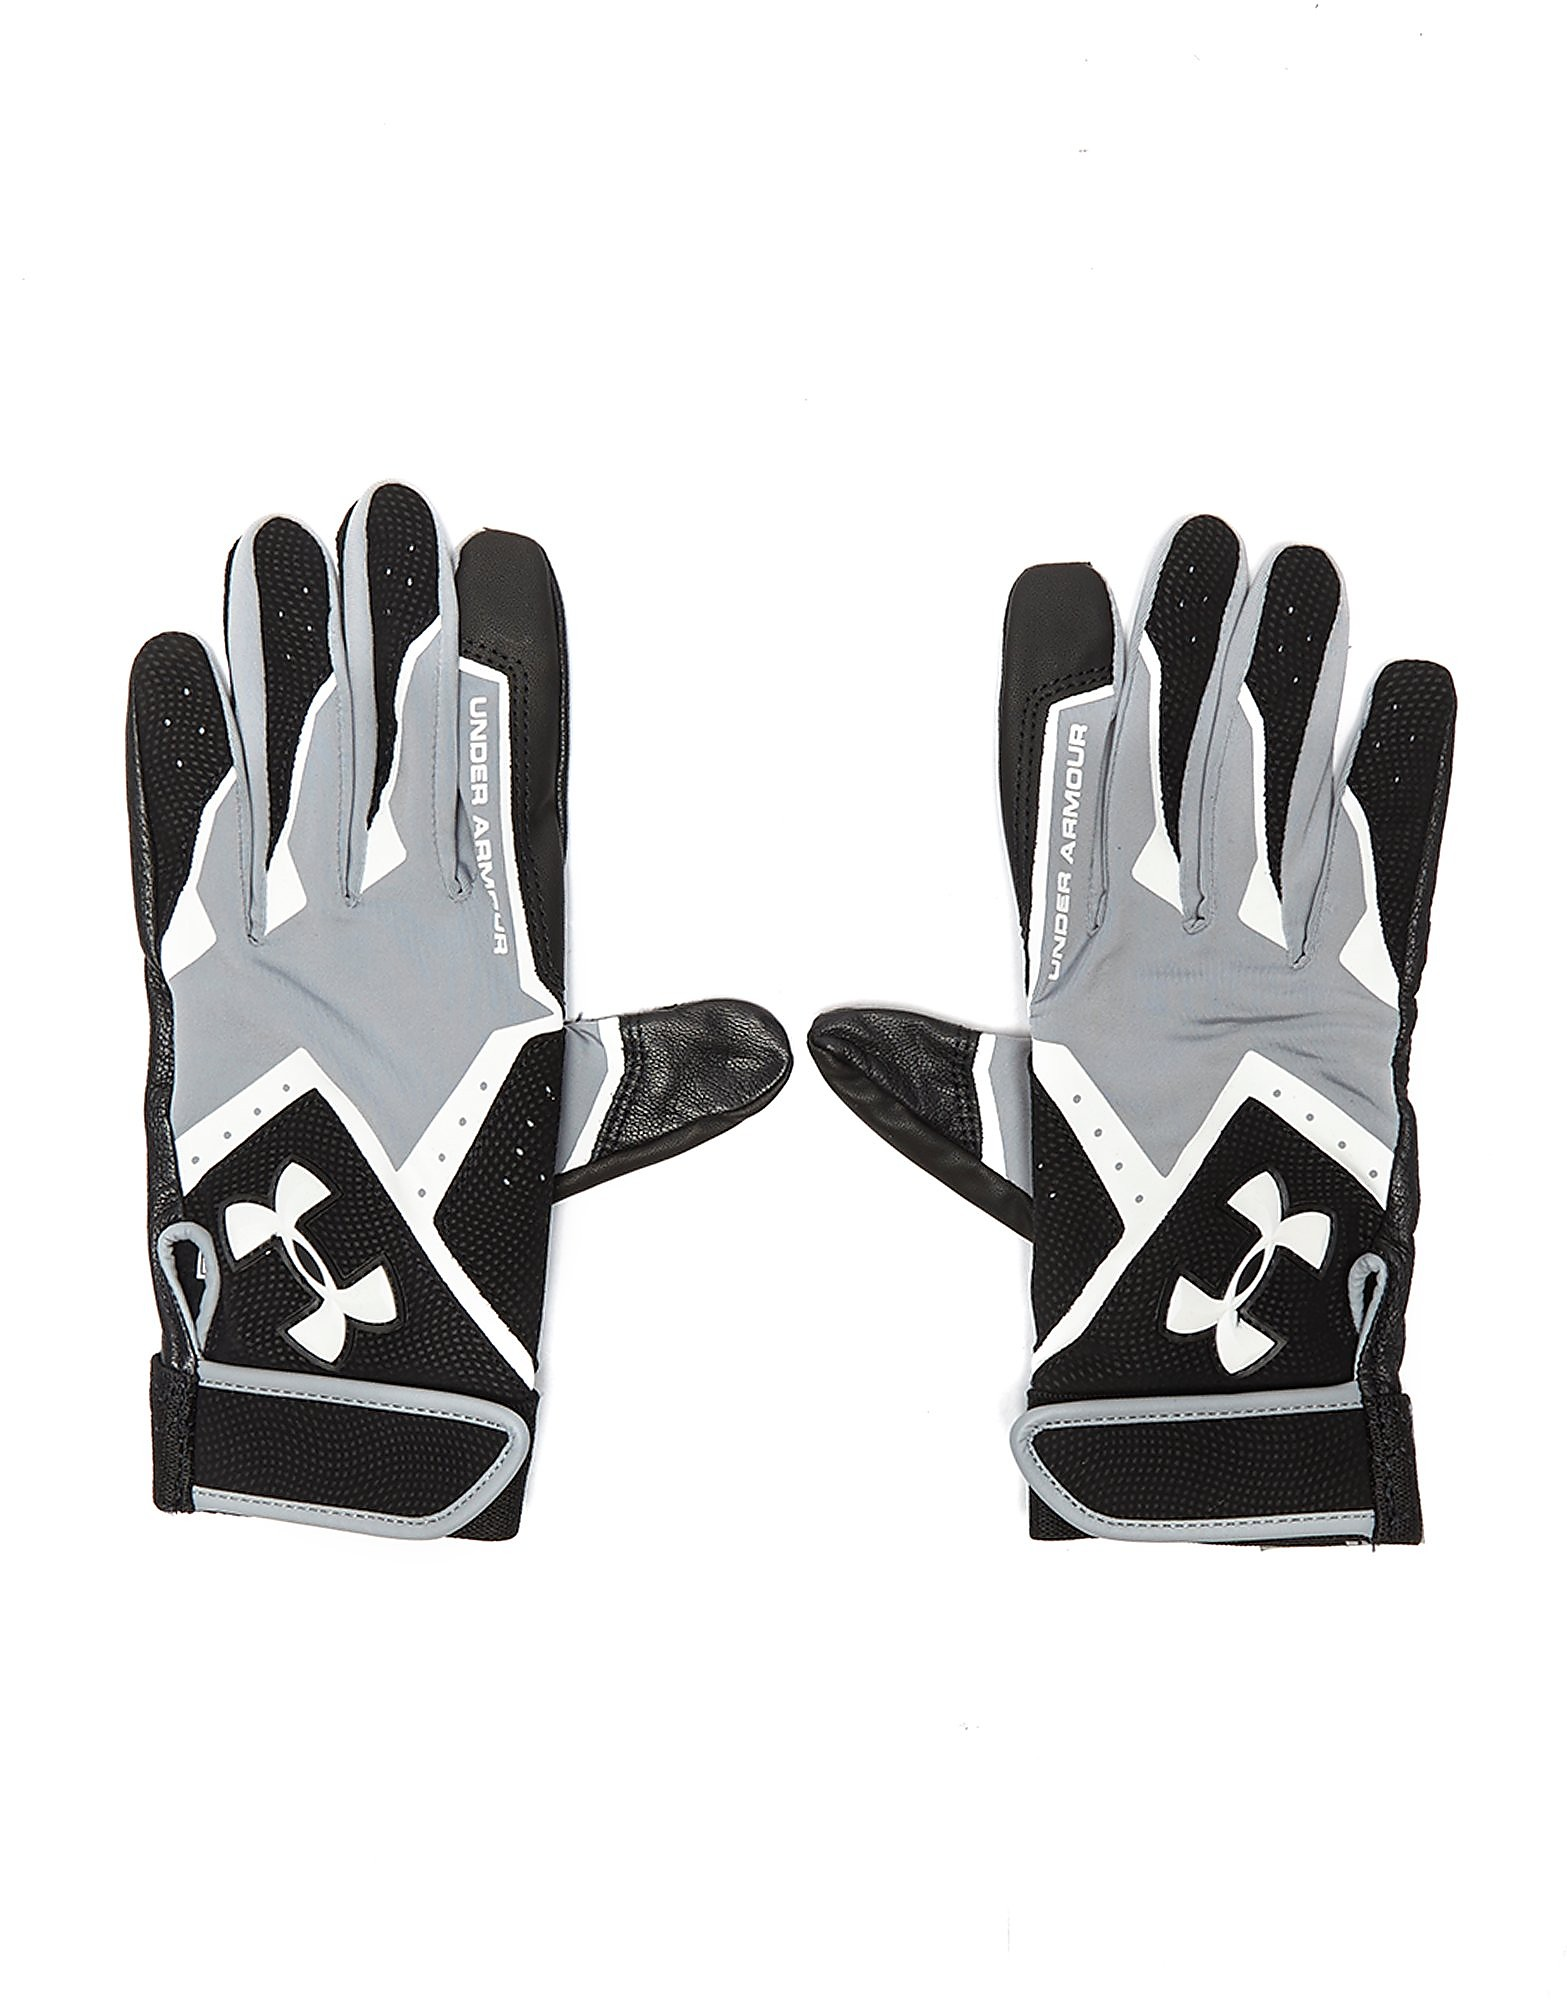 Leather gloves mens jd - Under Armour Clean Up Batting Gloves Black Grey White Mens Black Grey White